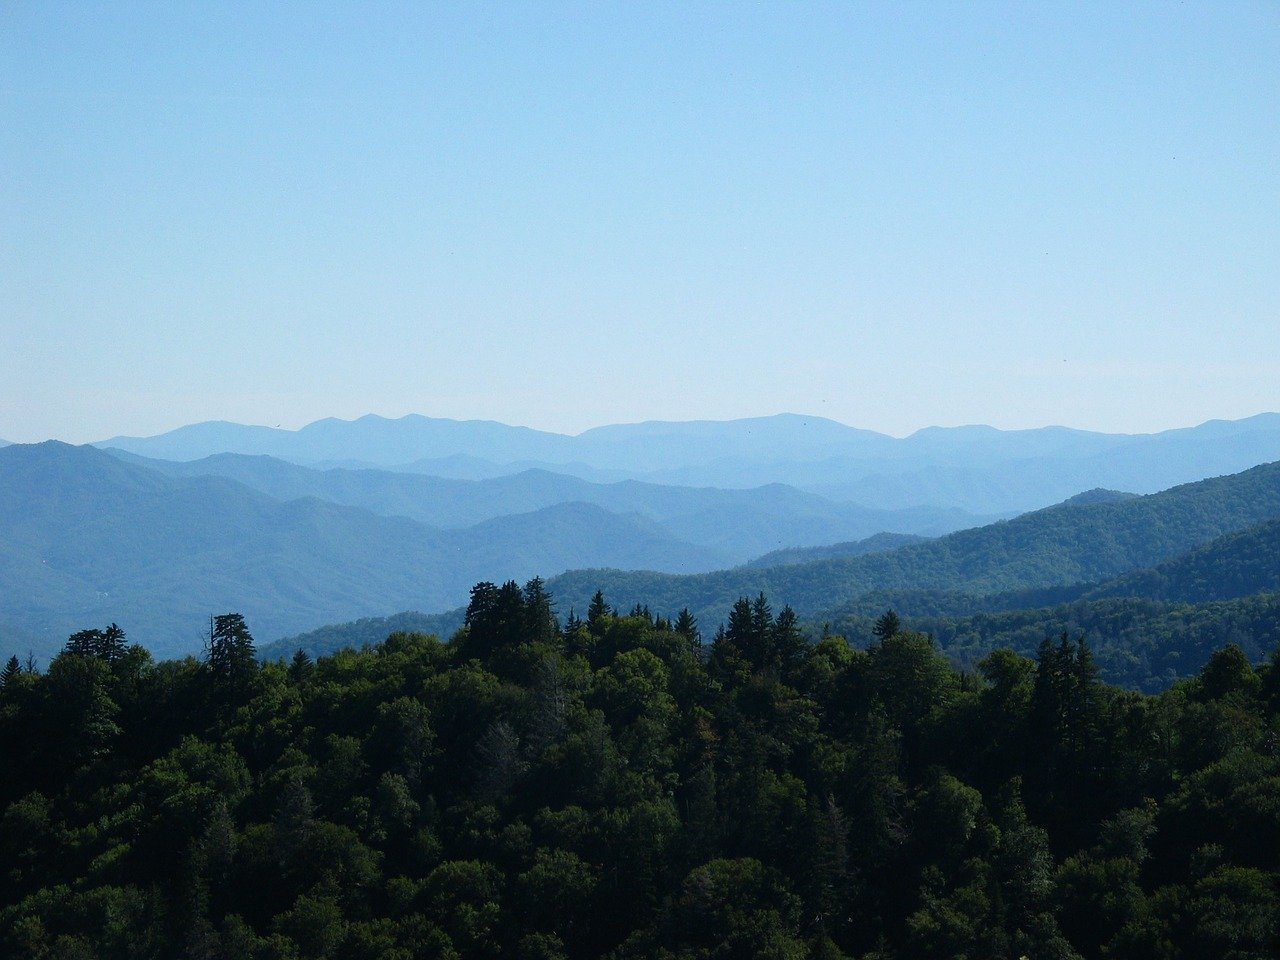 Ways to Make Your Trip to the Smoky Mountains More Memorable